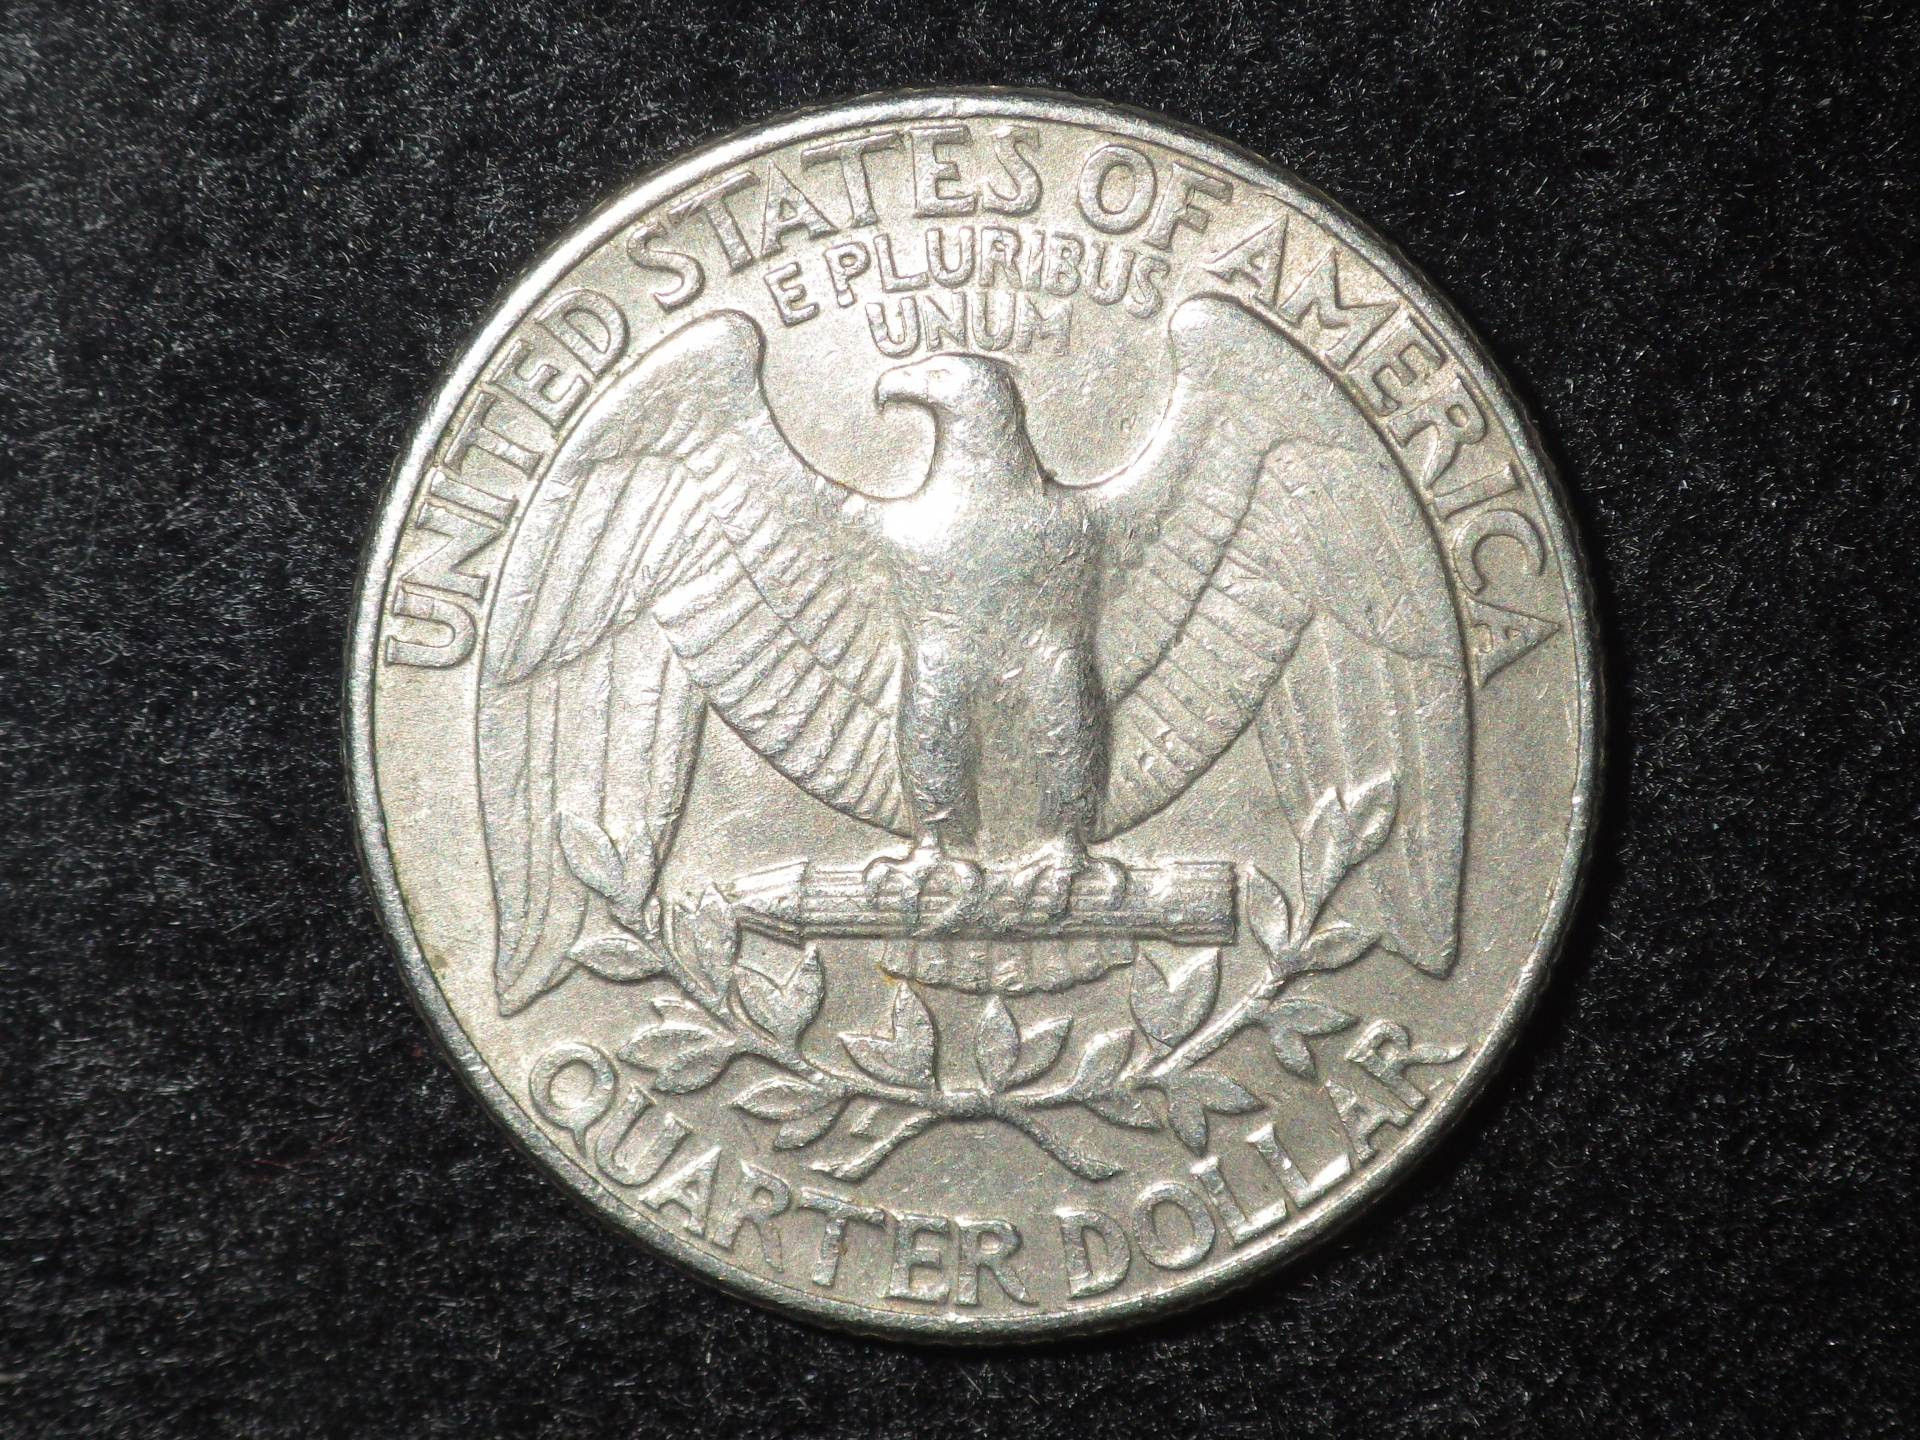 https://i0.wp.com/www.publicdomainpictures.net/pictures/180000/velka/quarter-dollar.jpg